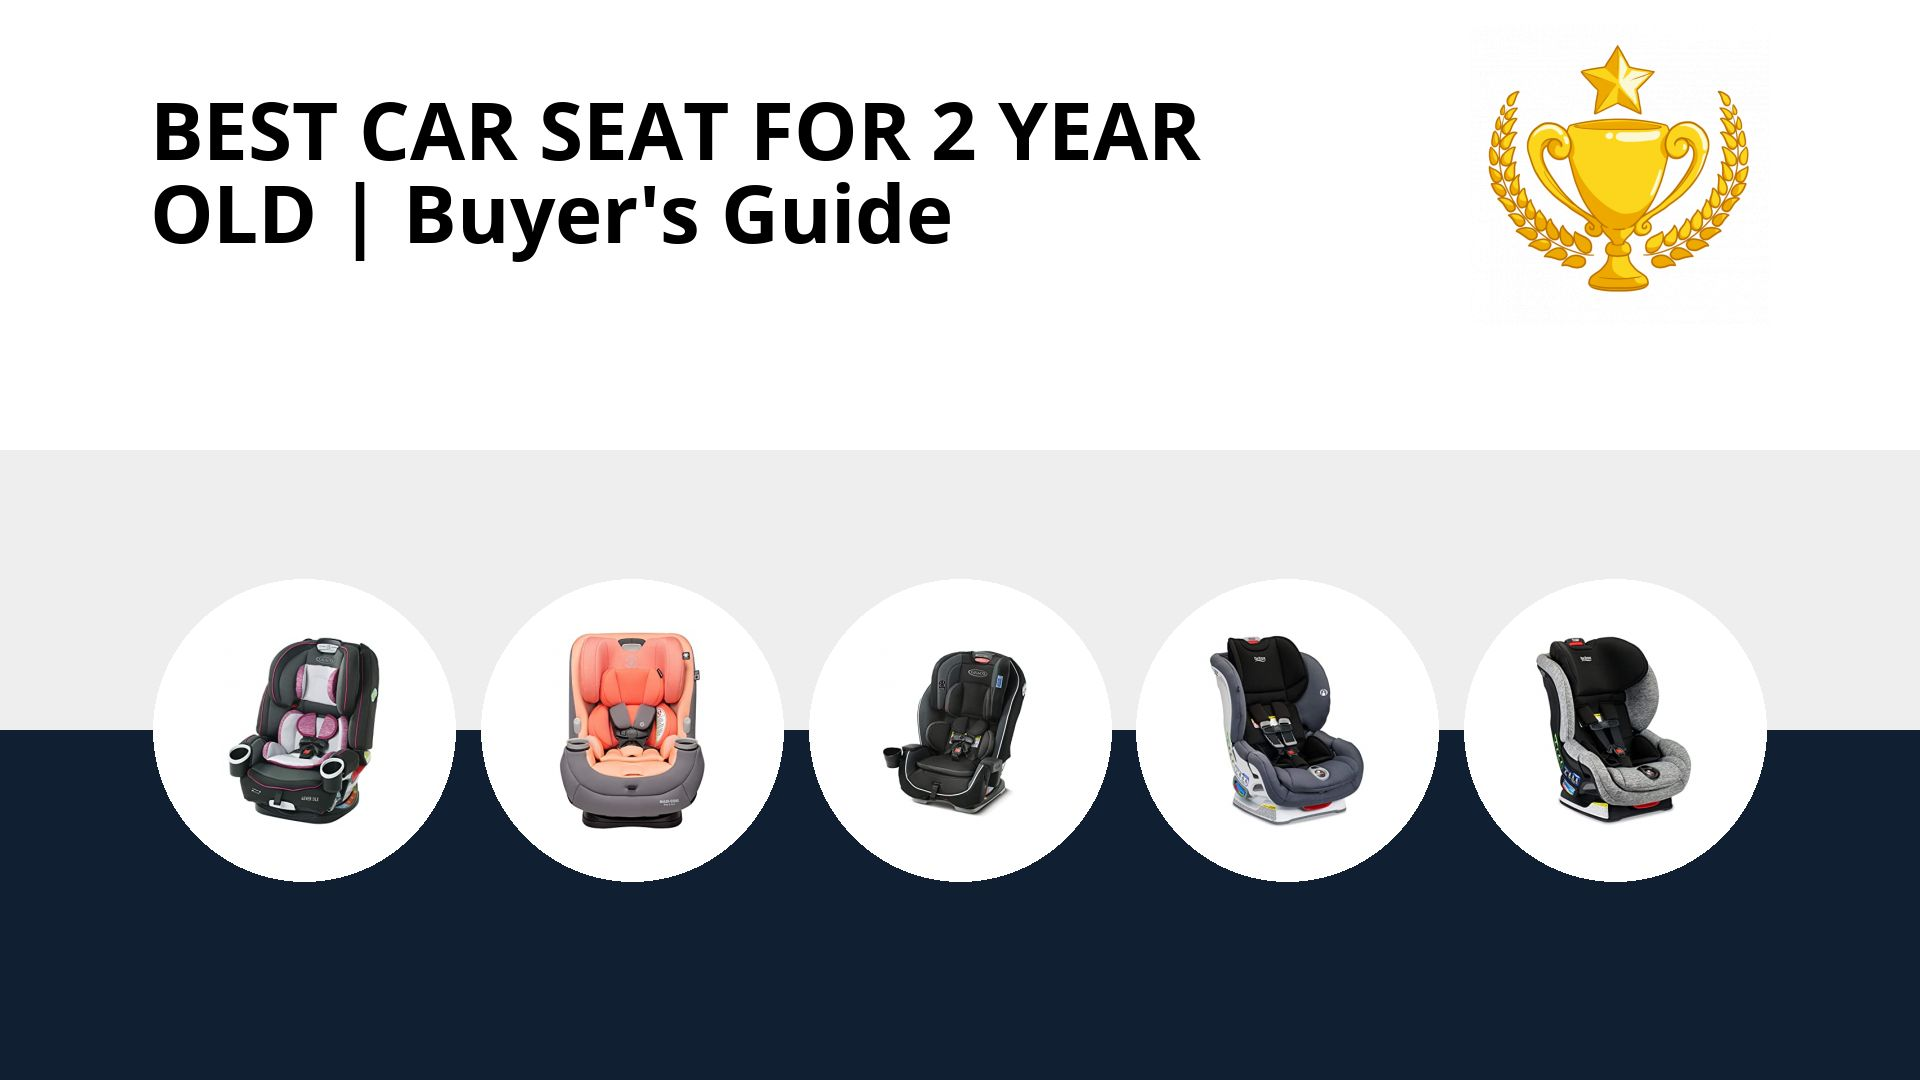 Best Car Seat For 2 Year Old: image